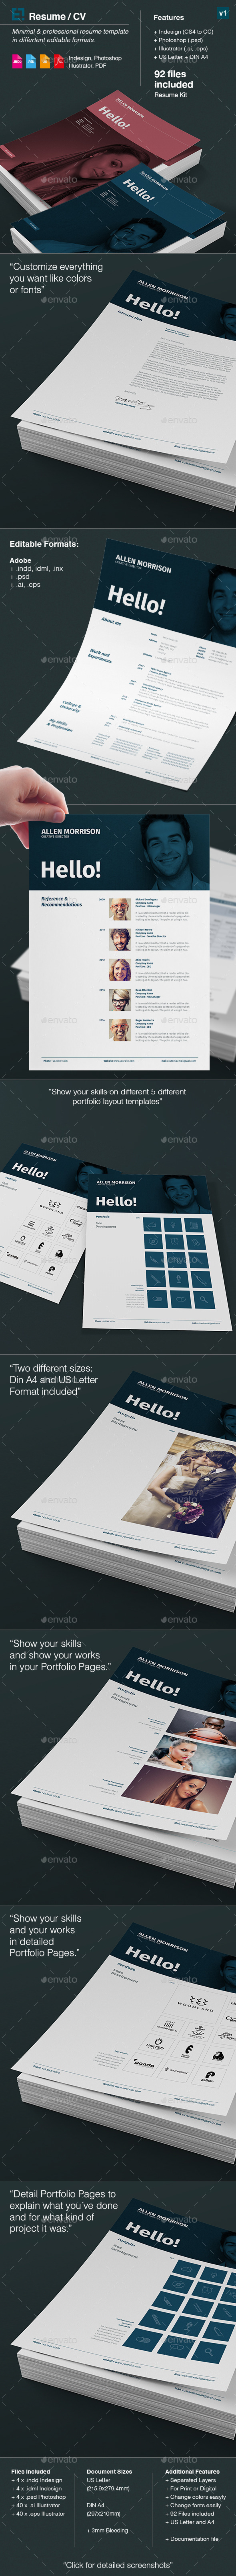 GraphicRiver Regulaar Resume and CV 10026674